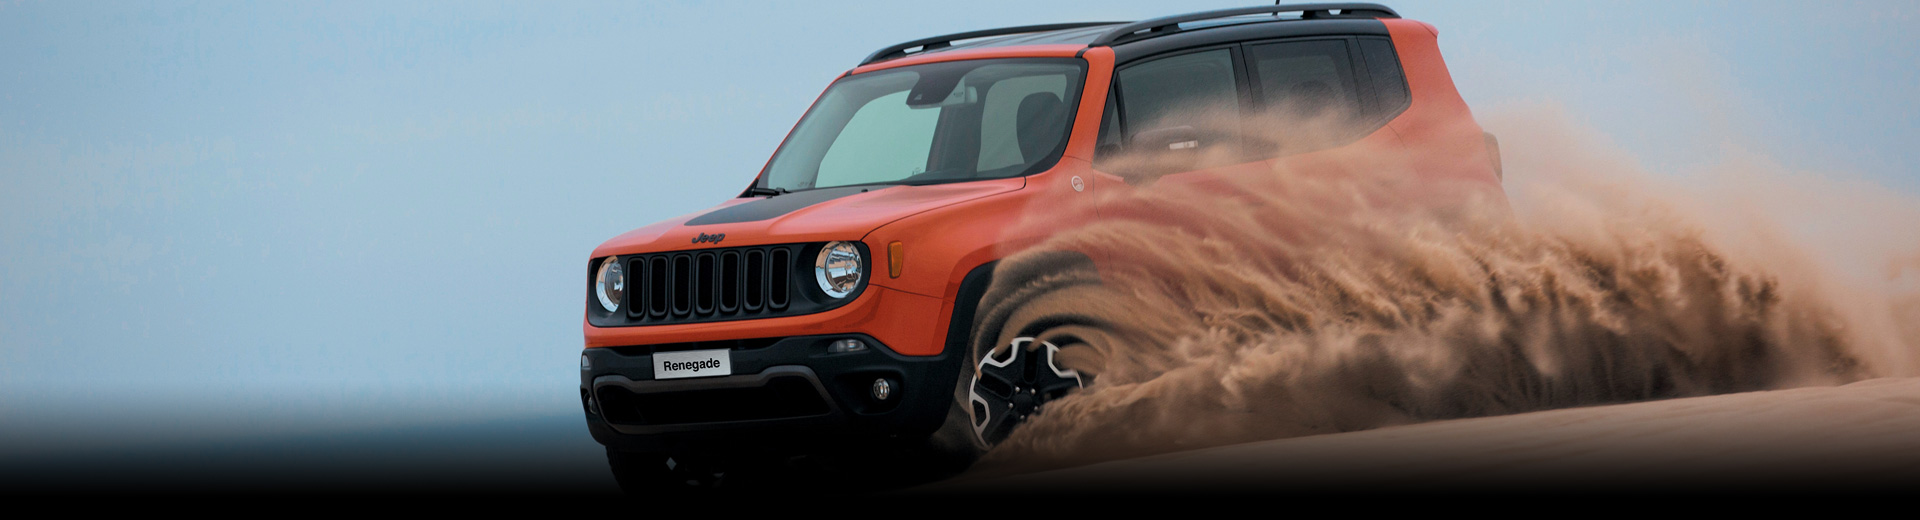 Jeep Renegade Banner